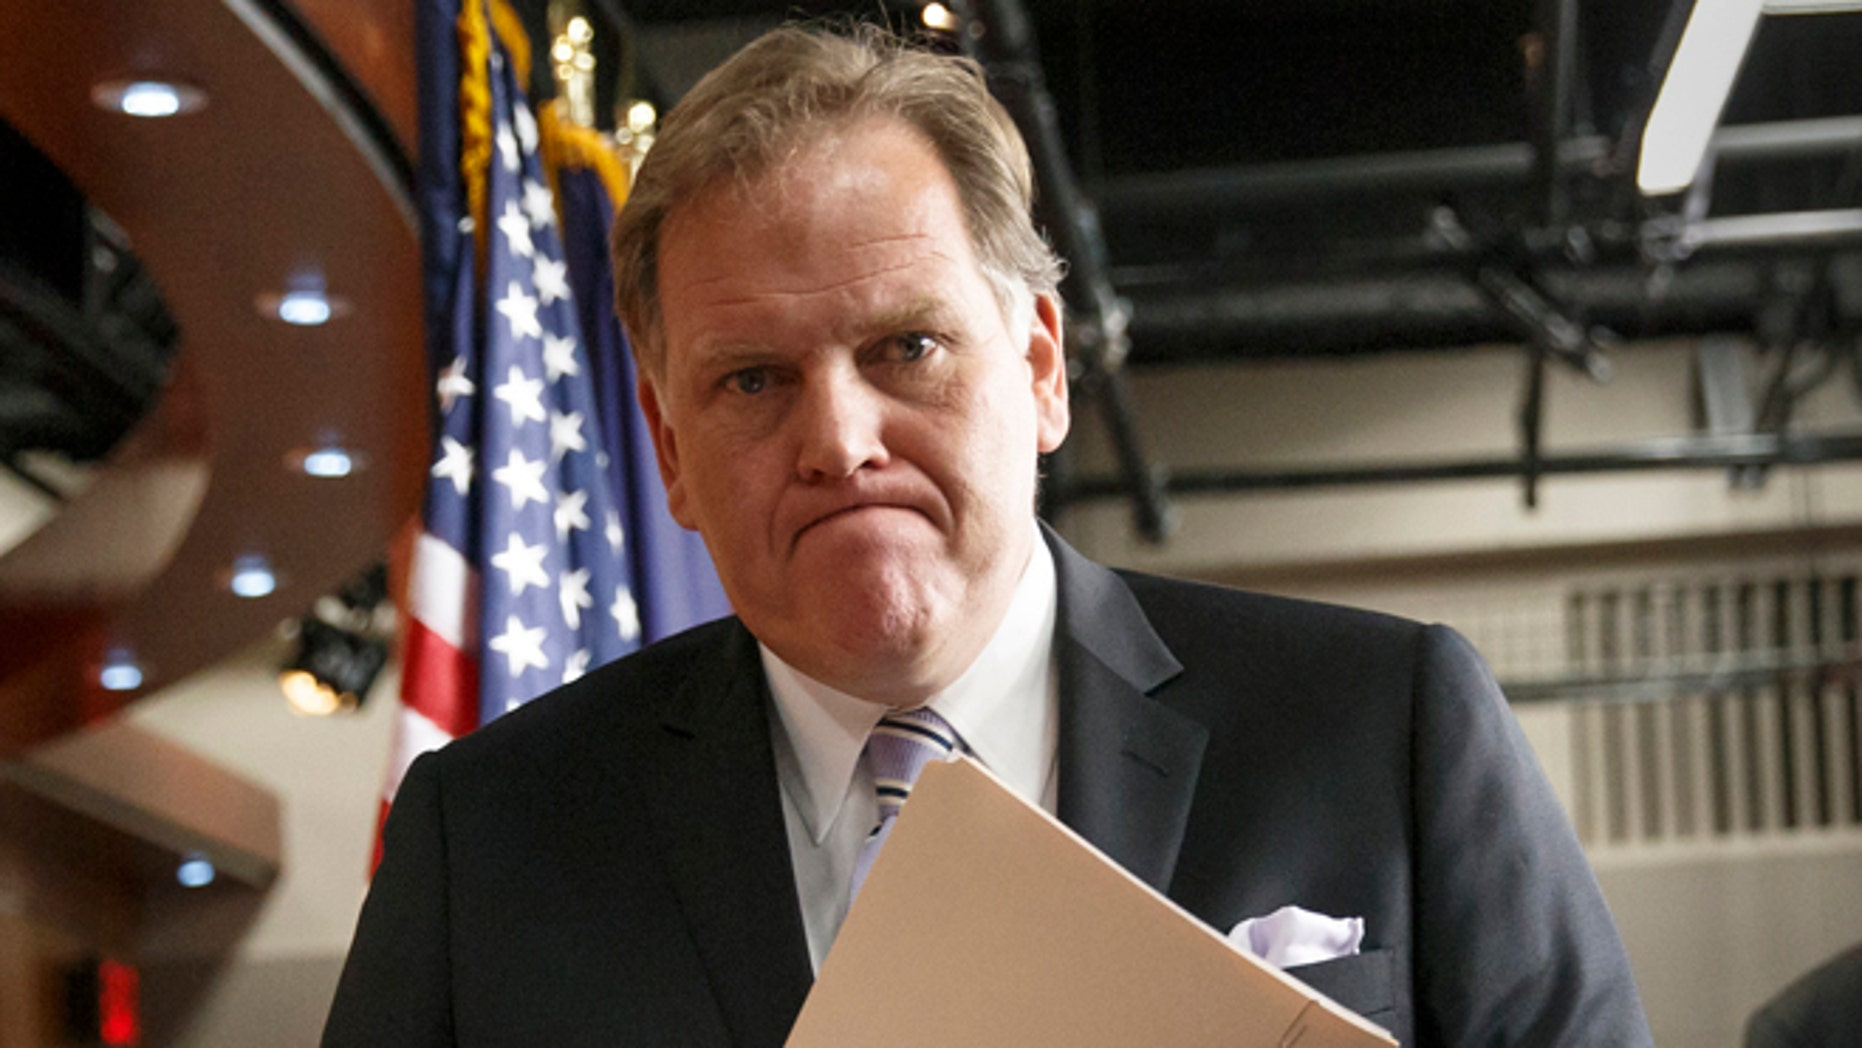 This March 25, 2014 file photo shows House Intelligence Committee Chairman Mike Rogers, R-Mich., leaving a press conference on Capitol Hill in Washington.